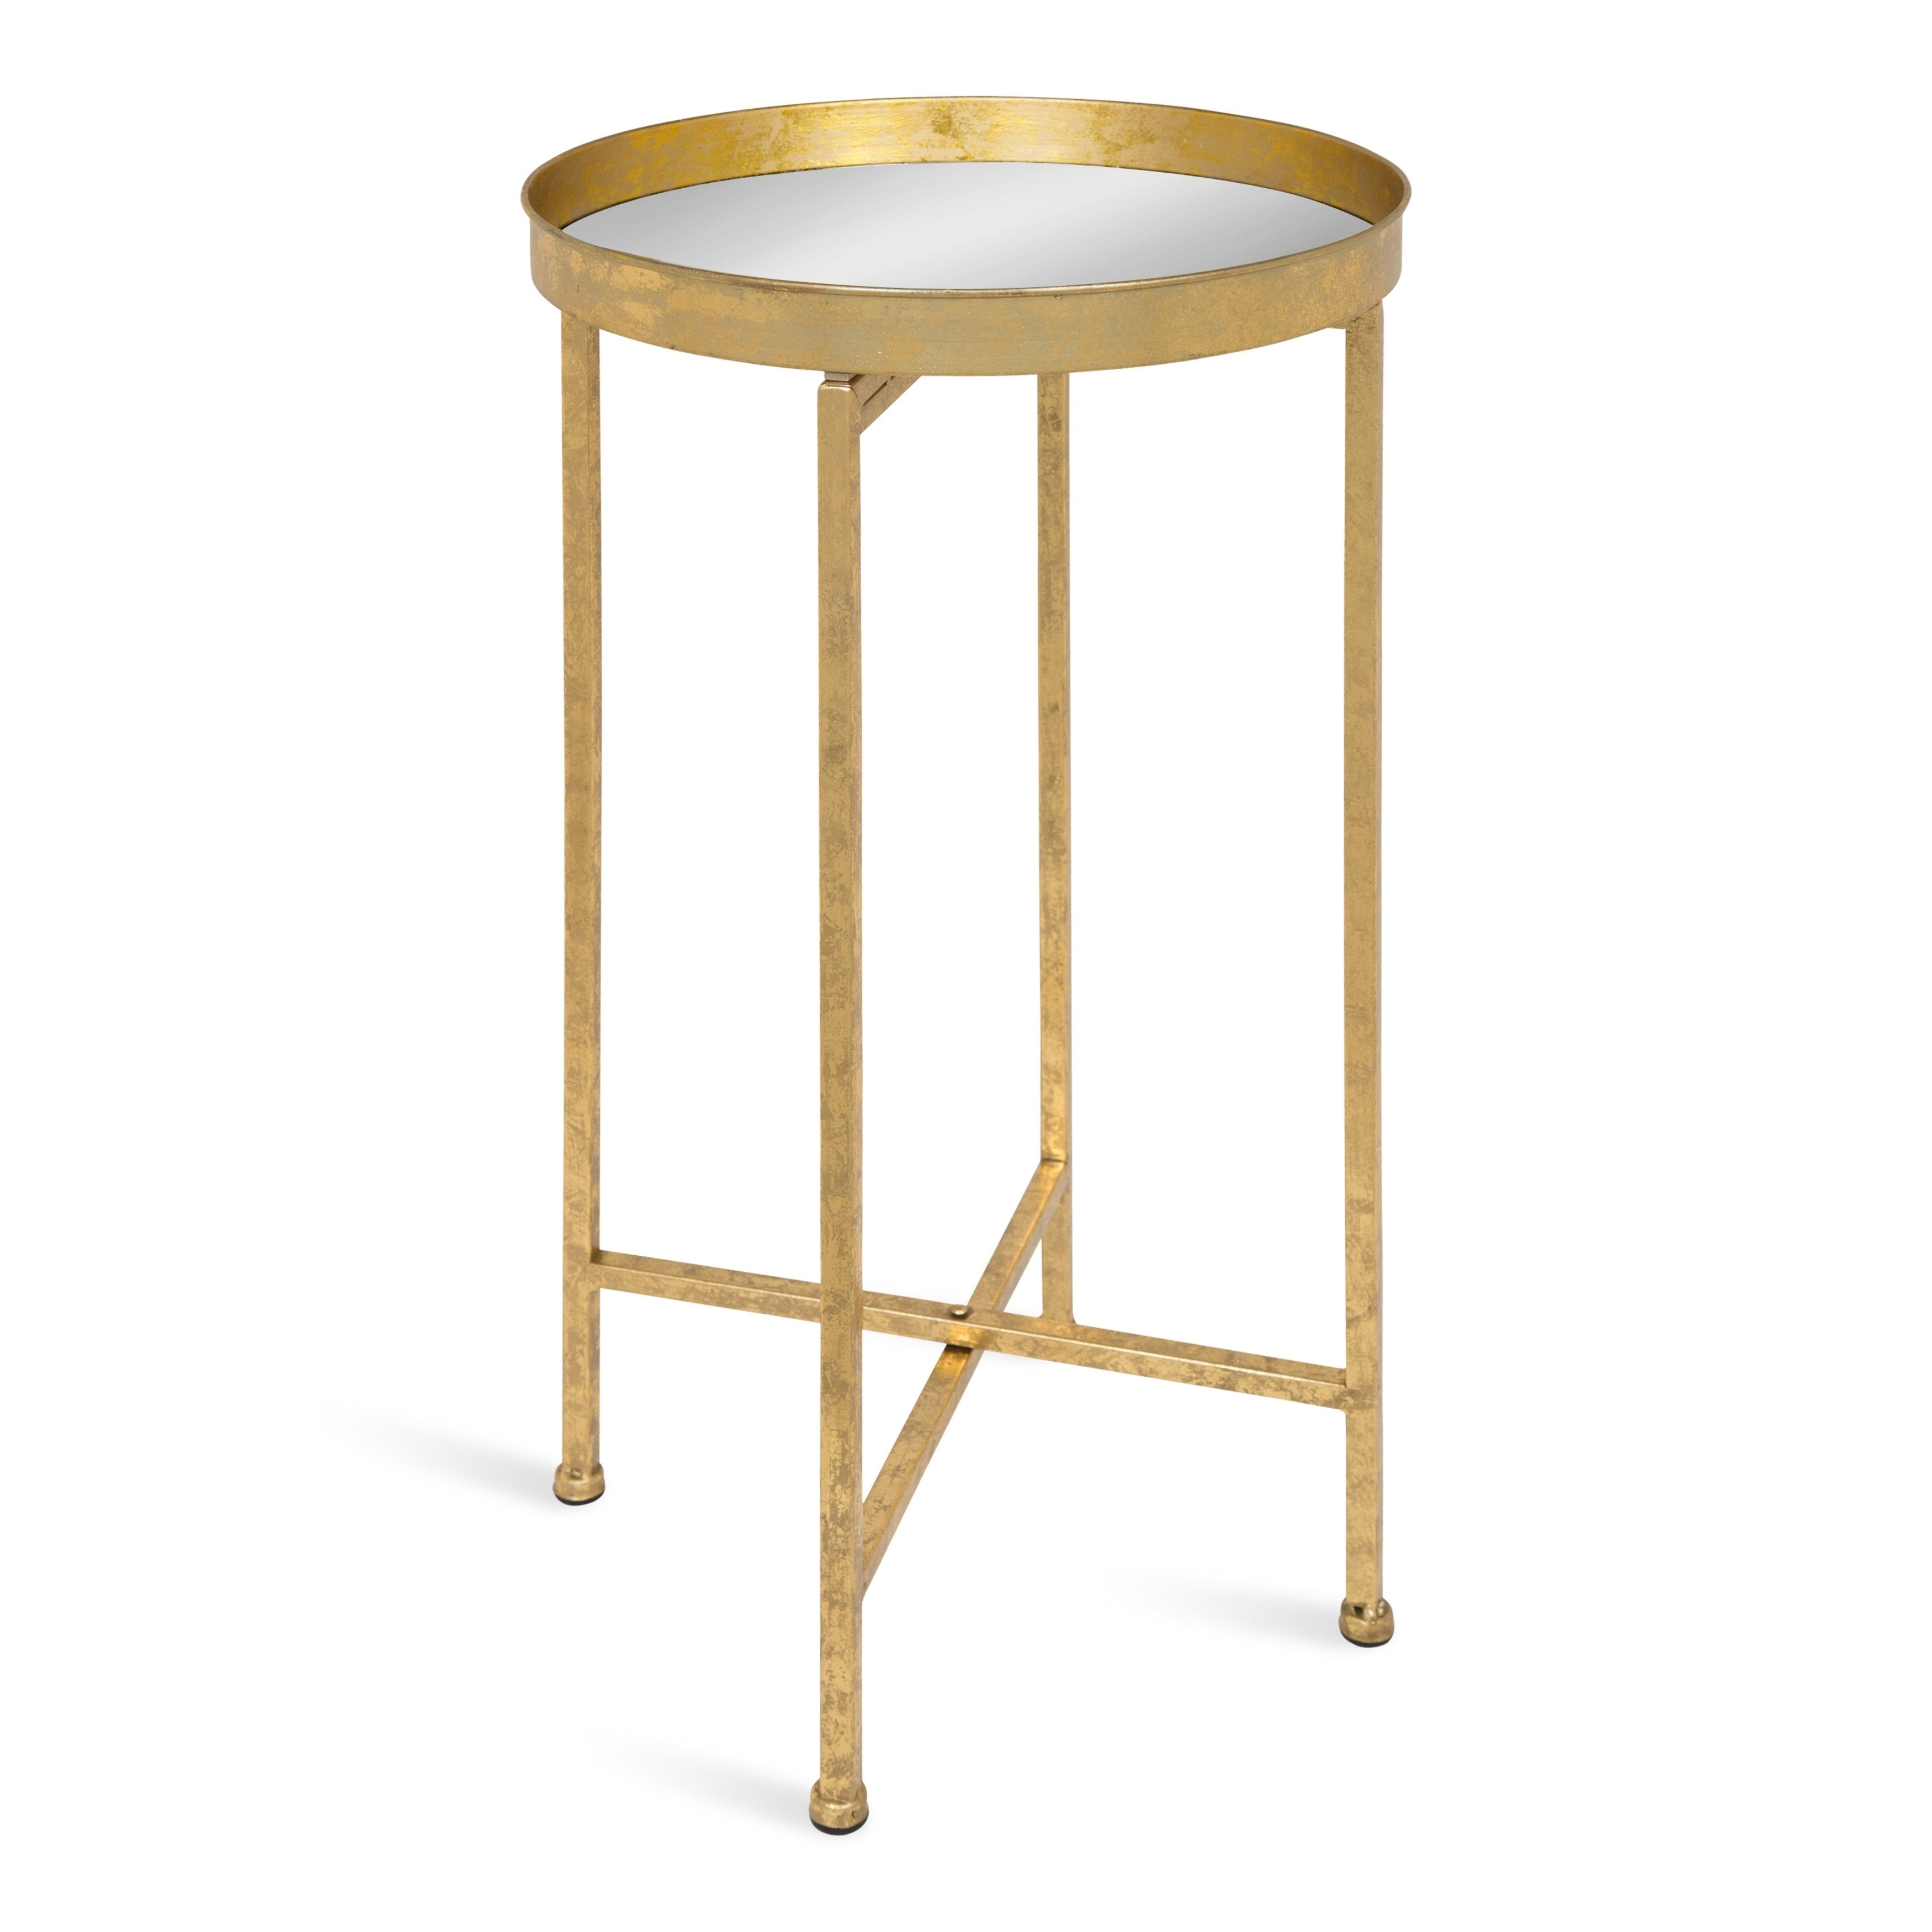 kate and laurel celia round metal foldable tray accent table cardboard free shipping today designer glass coffee tables white marble brass pier one bedroom sets long narrow ikea